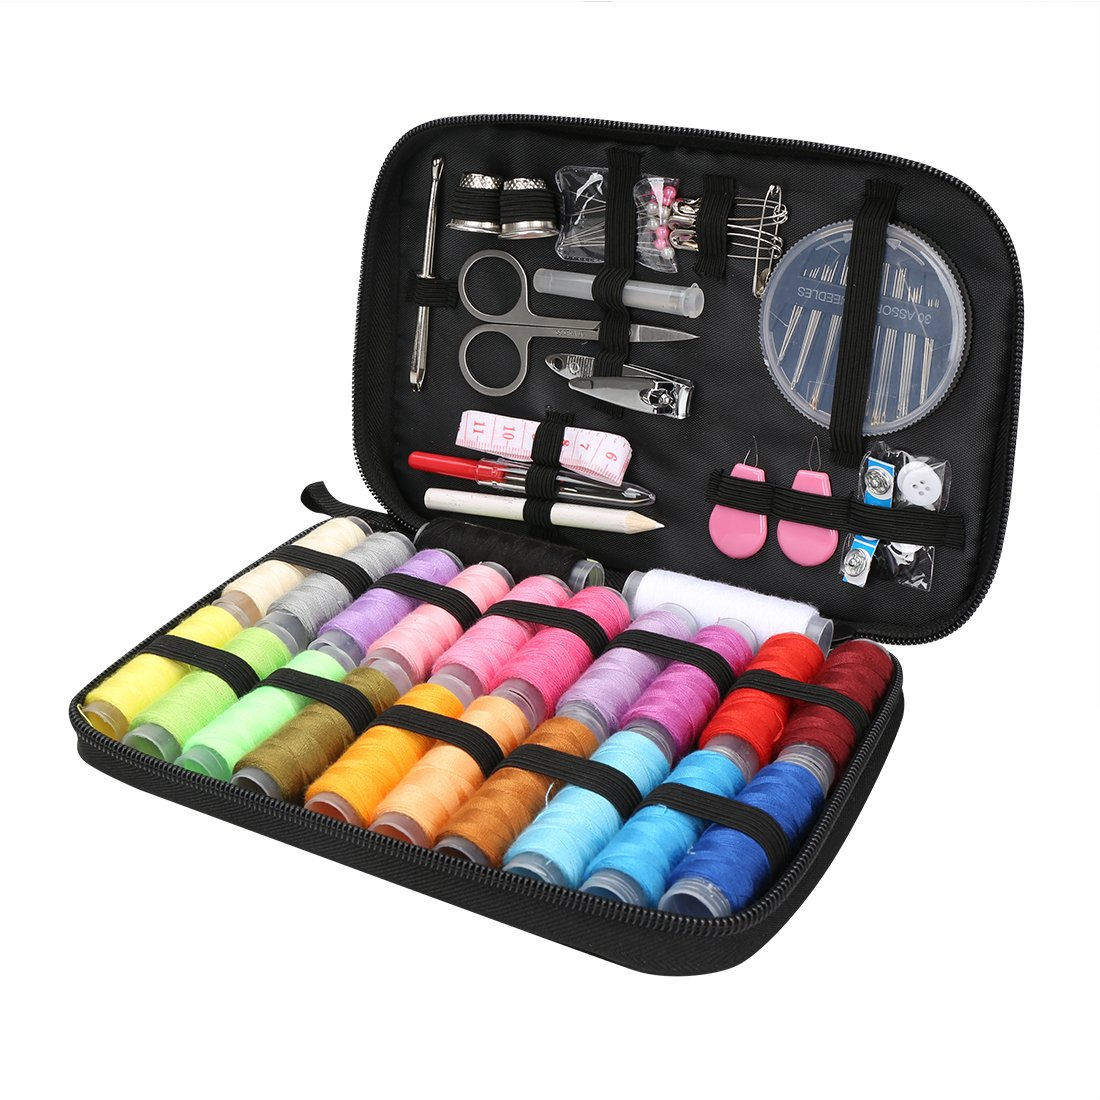 Portable Sewing Kit DIY Premium Sewing Supplies with 93 Sewing Accessories, 22 Multi Colors Spools of Thread, Black Carrying Case HLC